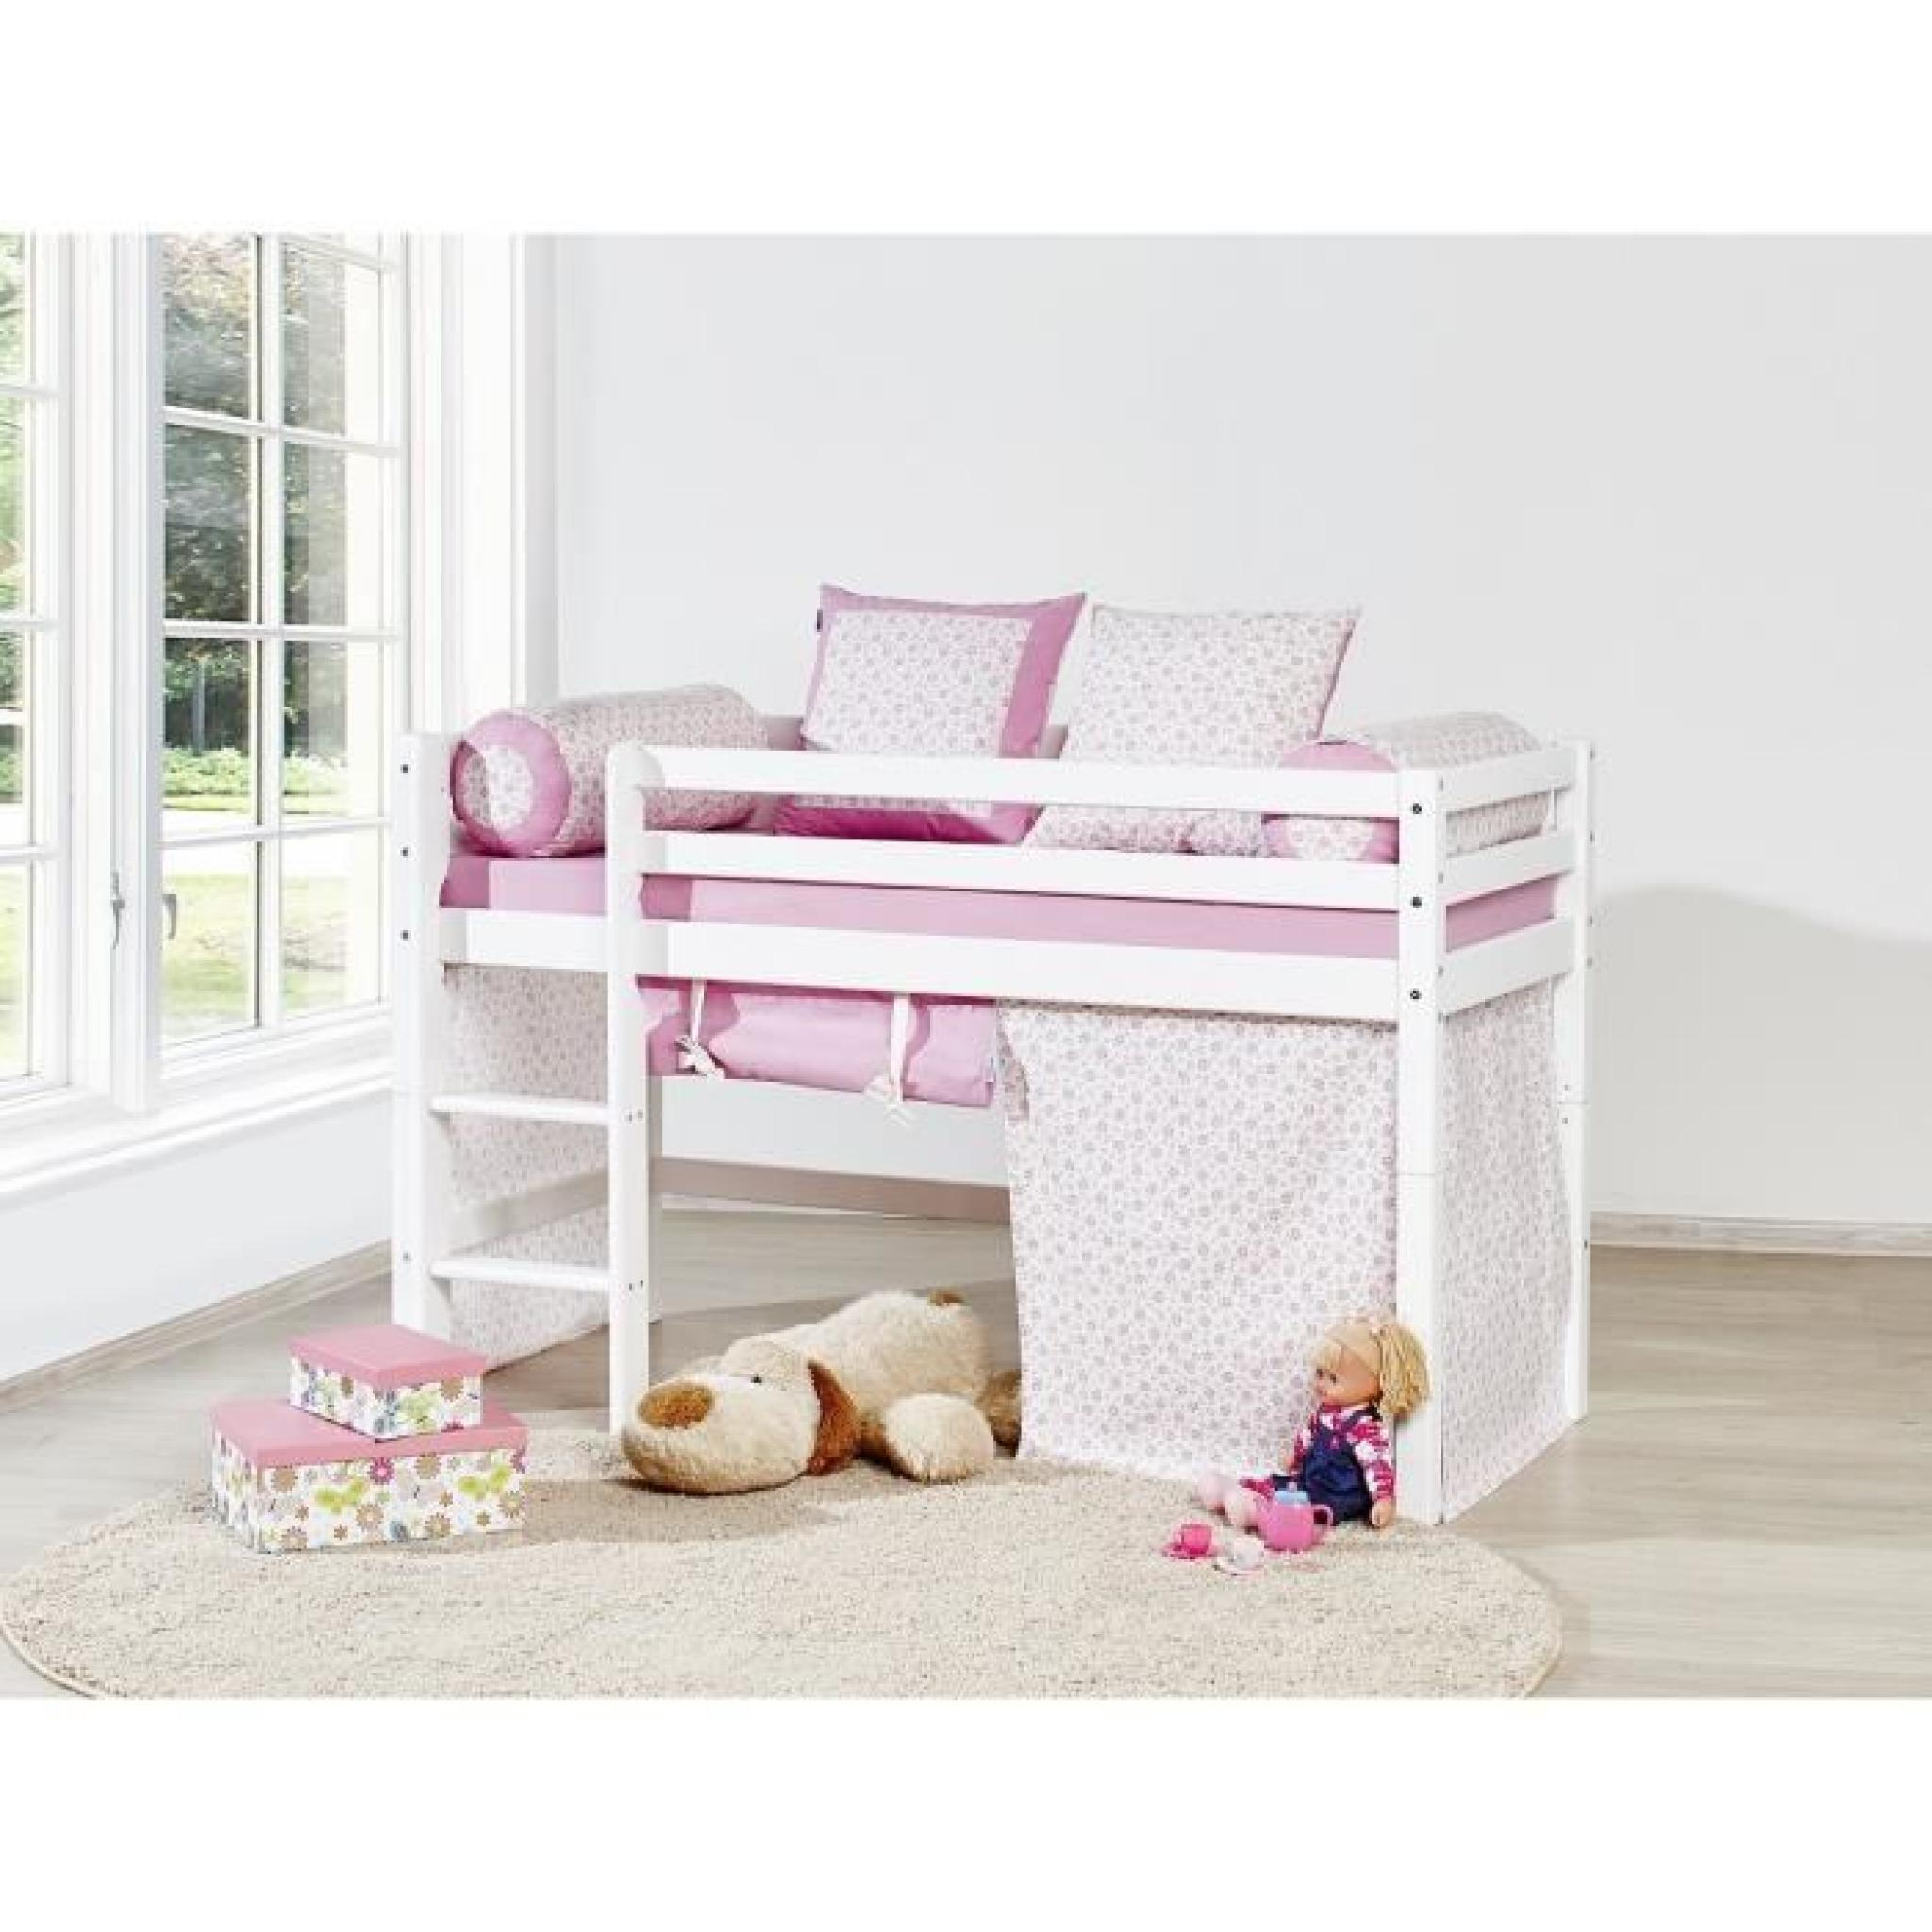 Lit Superpose Blanc Loop Princesse Lit Superposé Enfant 70x160cm Blanc